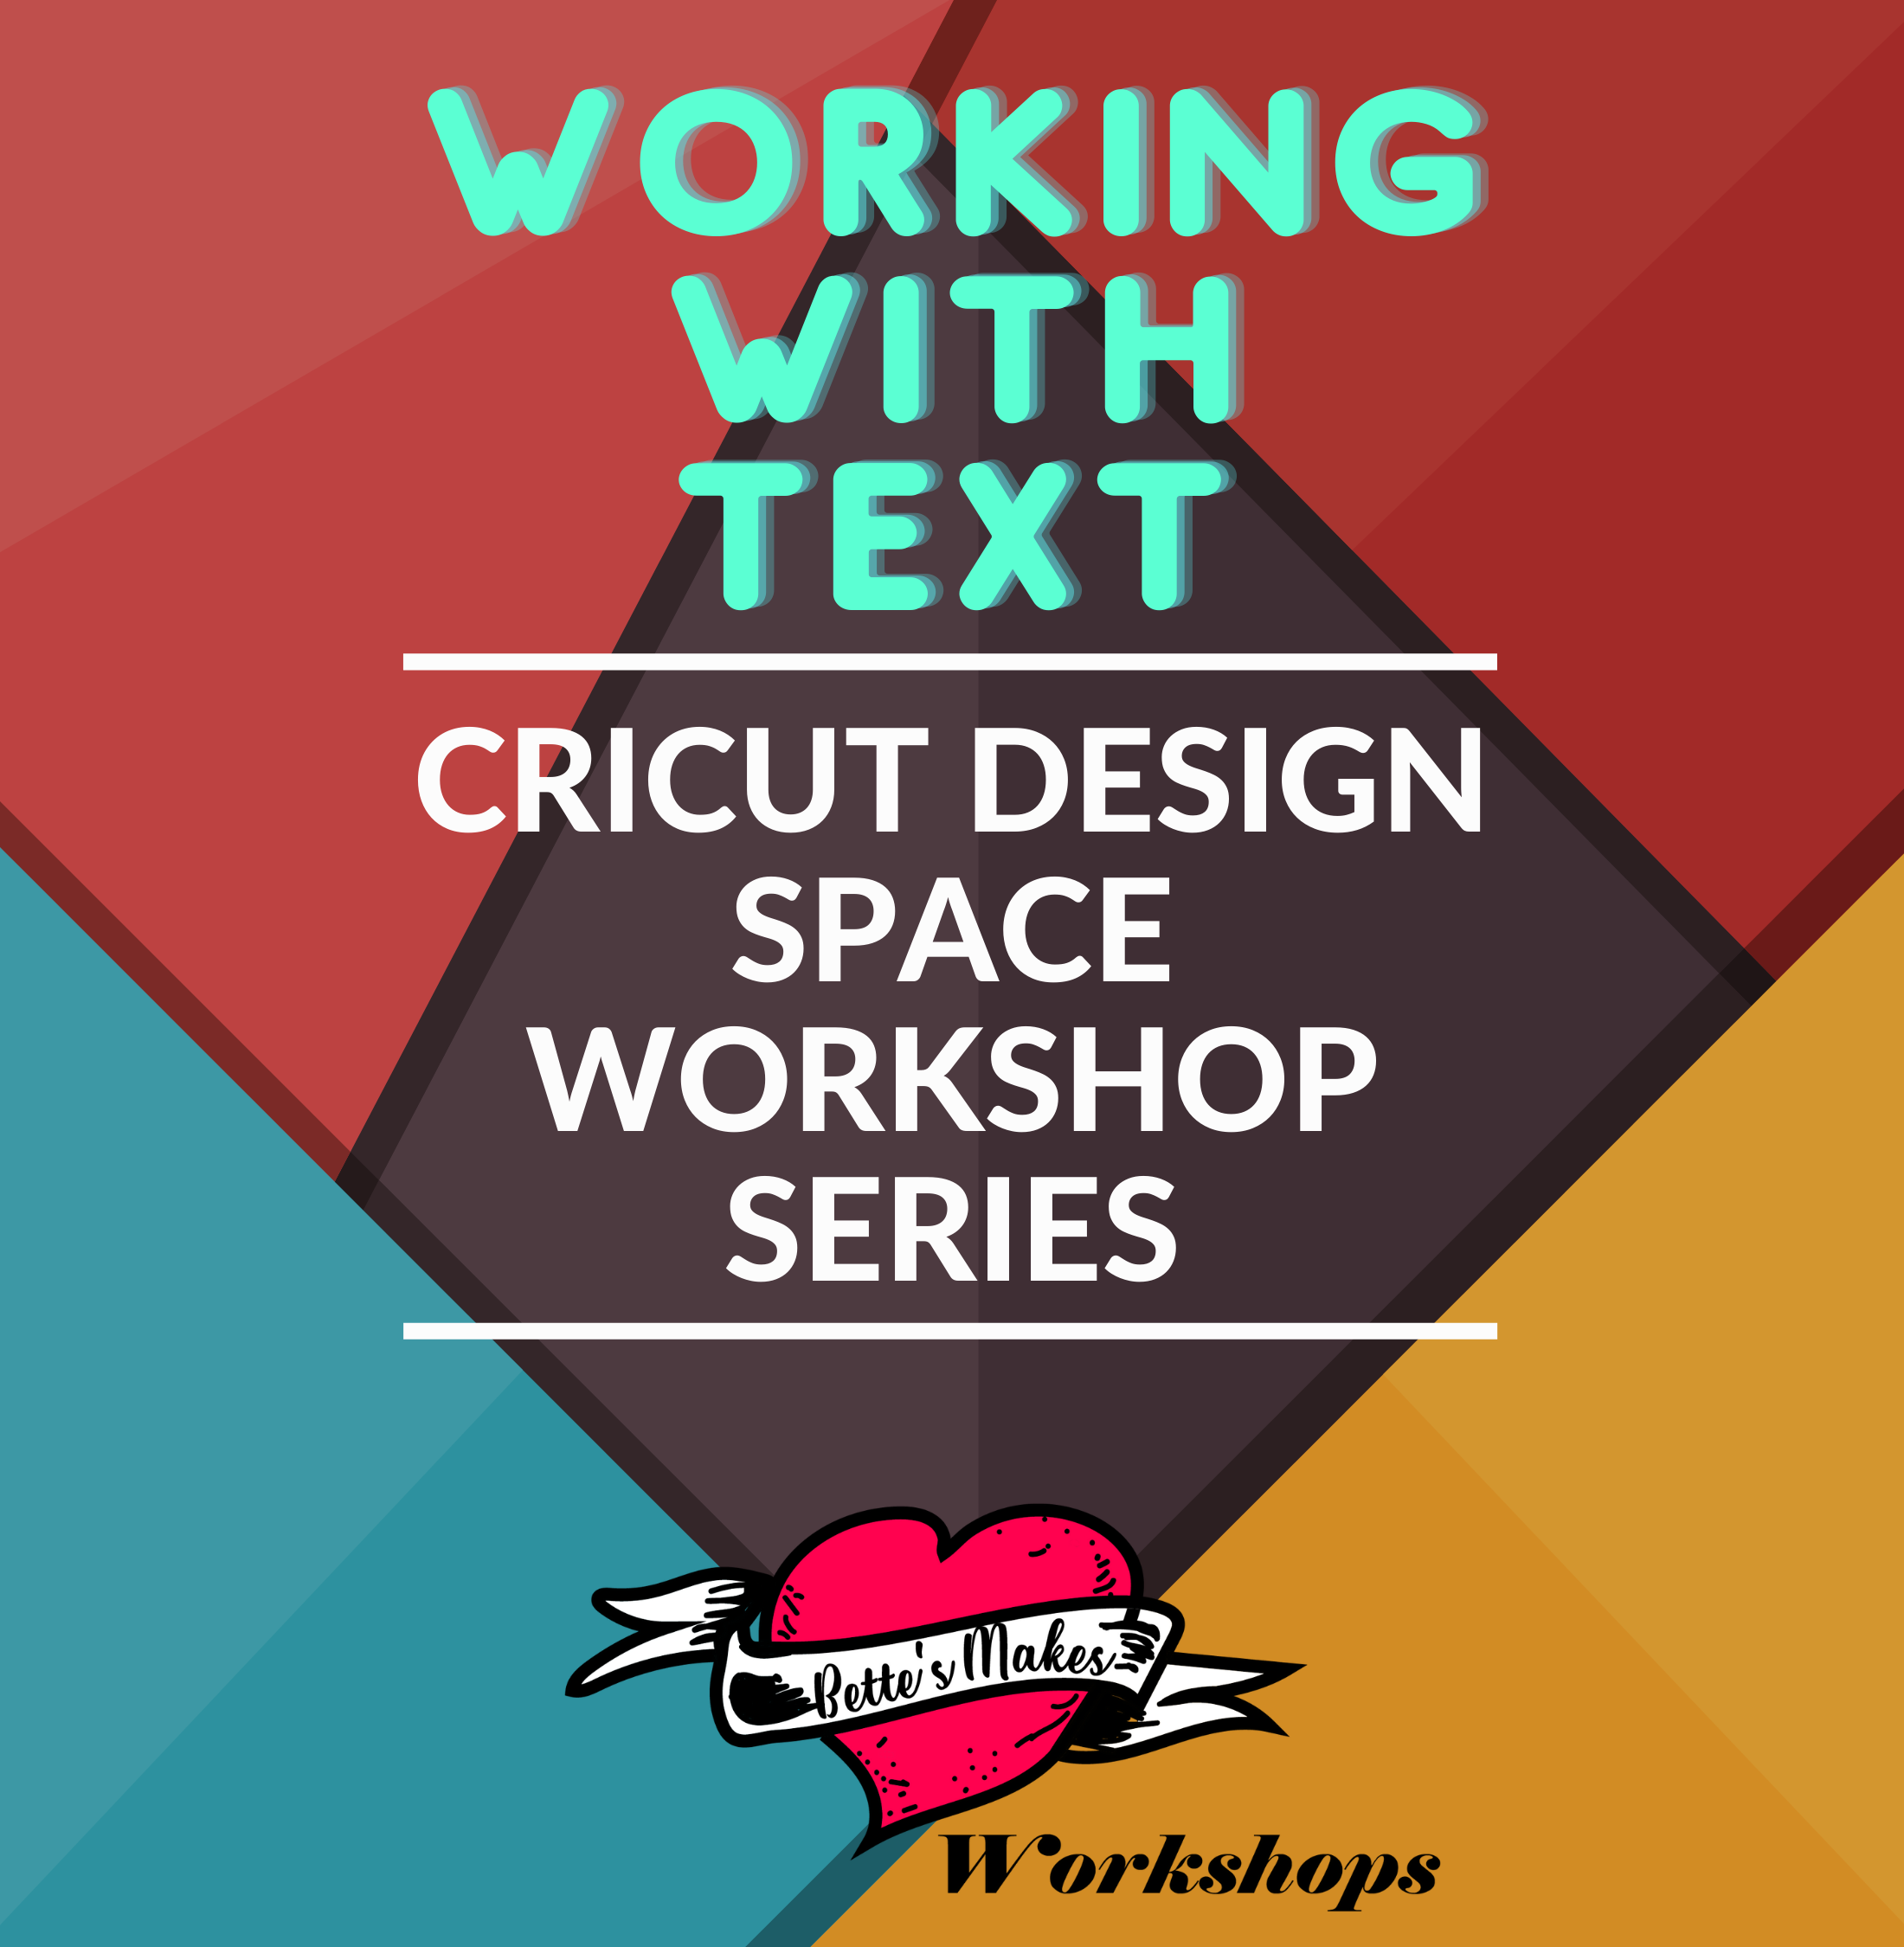 BettesMakes Academy Workshop Series 1 - Working with Text